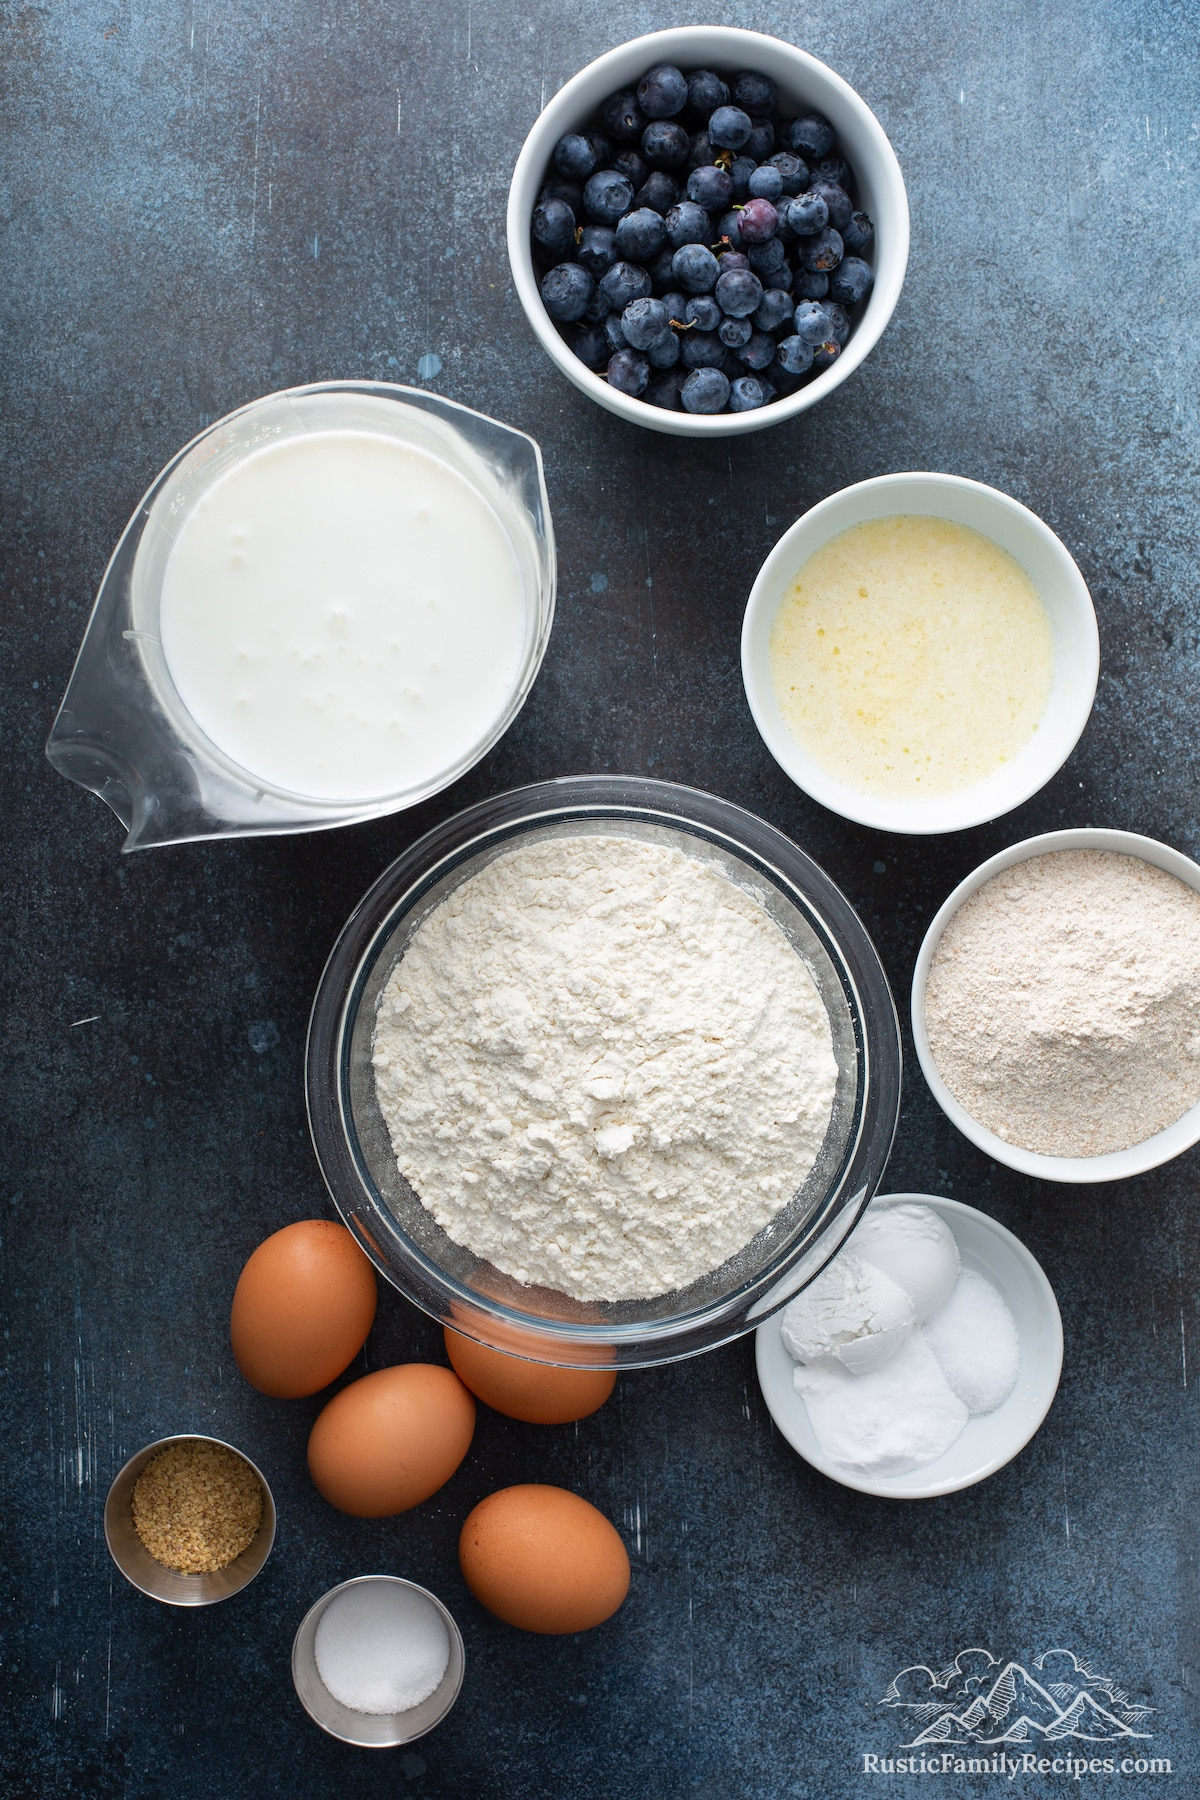 Everything you need for Blueberry Buttermilk Waffles: blueberries, sugar, all purpose and whole wheat flour, baking soda and powder, salt, wheat germ, four eggs, melted butter, and buttermilk.